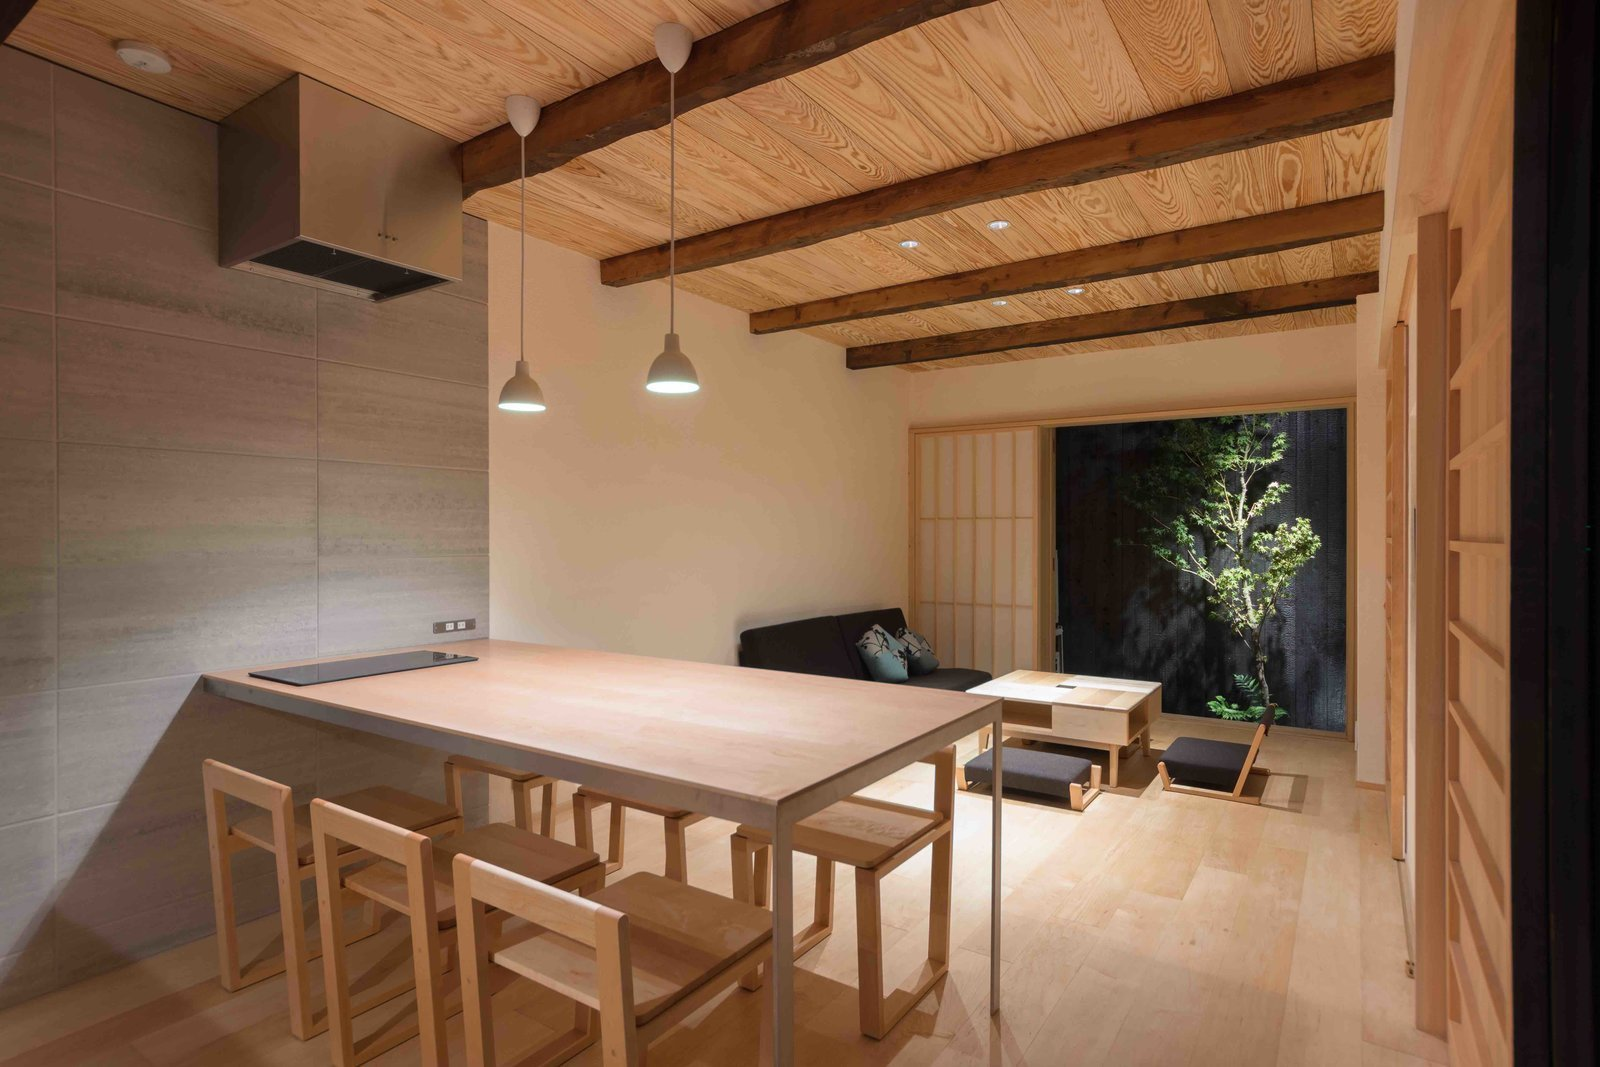 Tagged: Dining, Table, Stools, Pendant, Recessed, and Light Hardwood.  Best Dining Pendant Stools Photos from Stay in a Historic Japanese Townhouse in Kyoto That Was Saved From Ruin